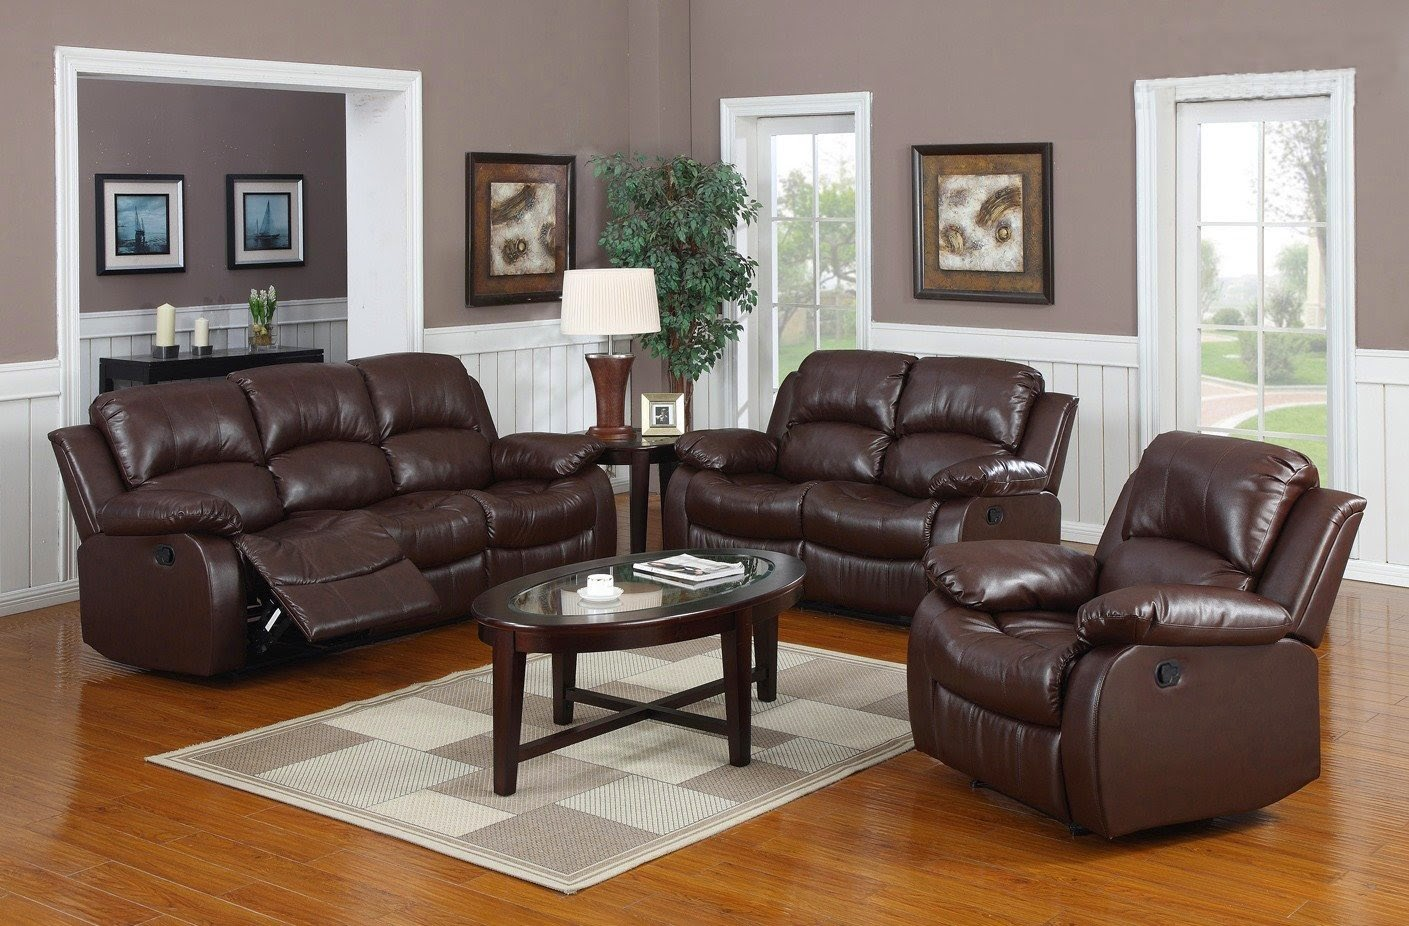 cheap reclining sofas sale leather reclining sofa costco. Black Bedroom Furniture Sets. Home Design Ideas